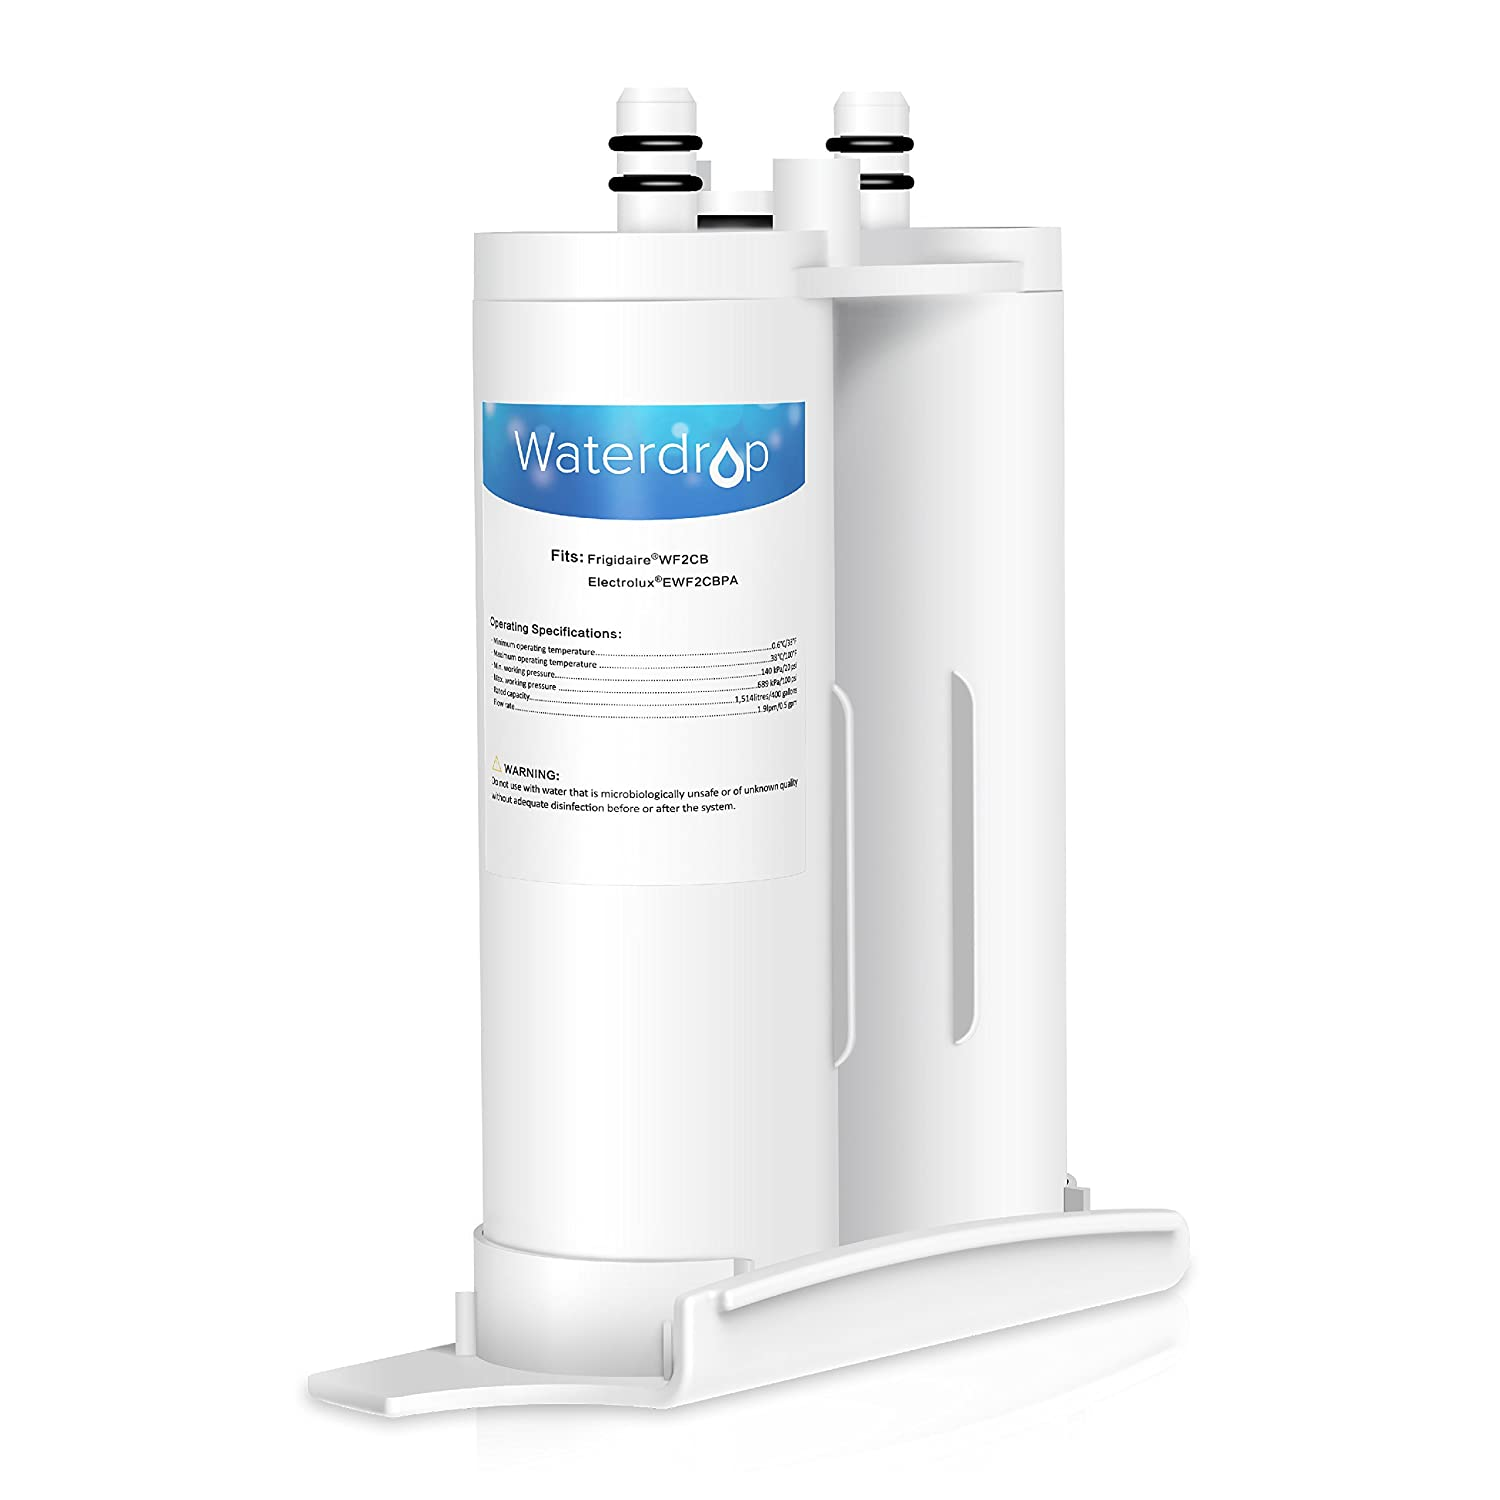 Waterdrop Refrigerator Water Filter, Compatible with WF2CB, NGFC2000, FC100, 9916, 469916, Pack of 1